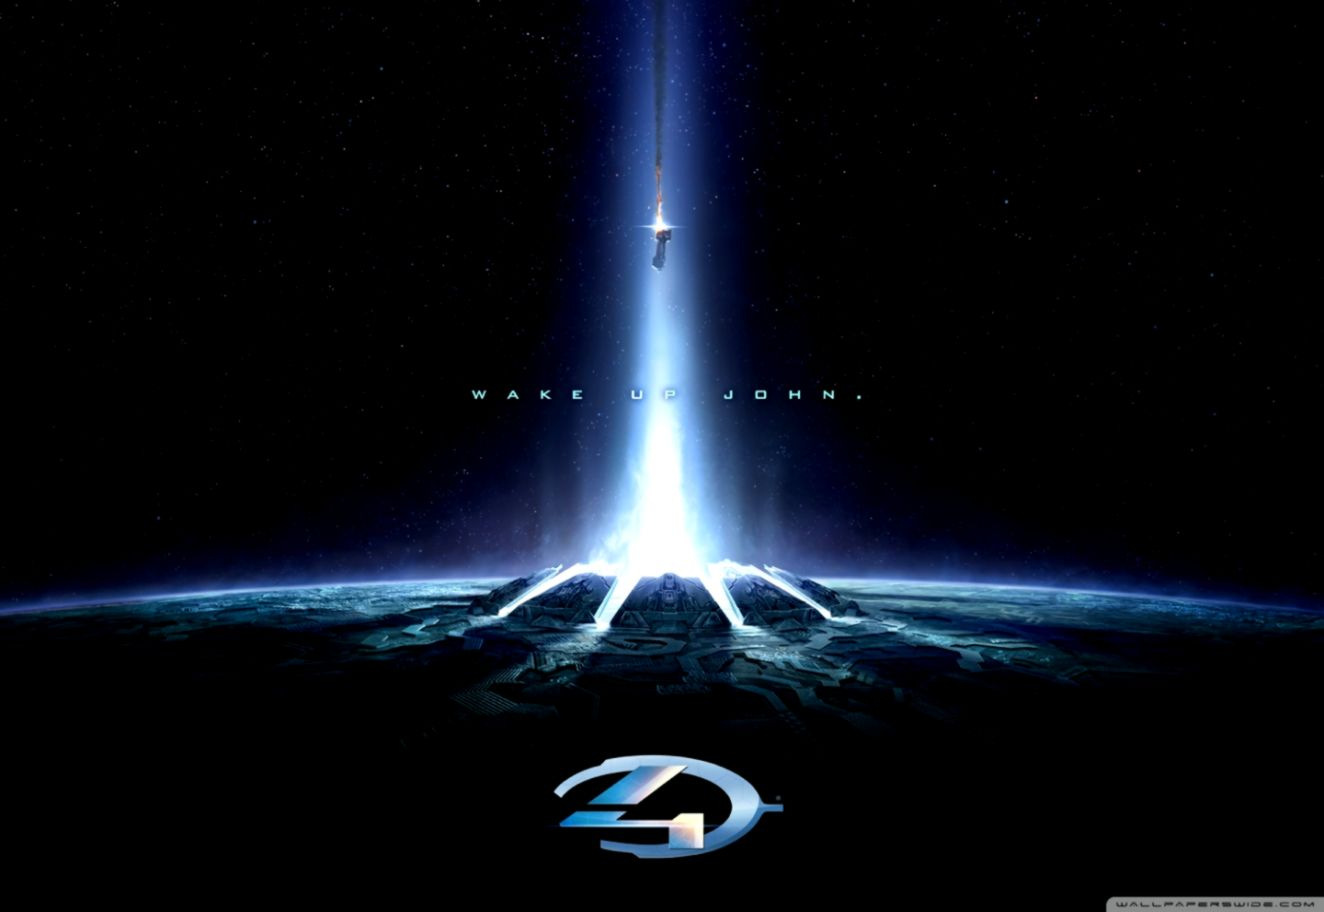 Halo 4 Wake Up John Wallpapers Wallpapers Dope